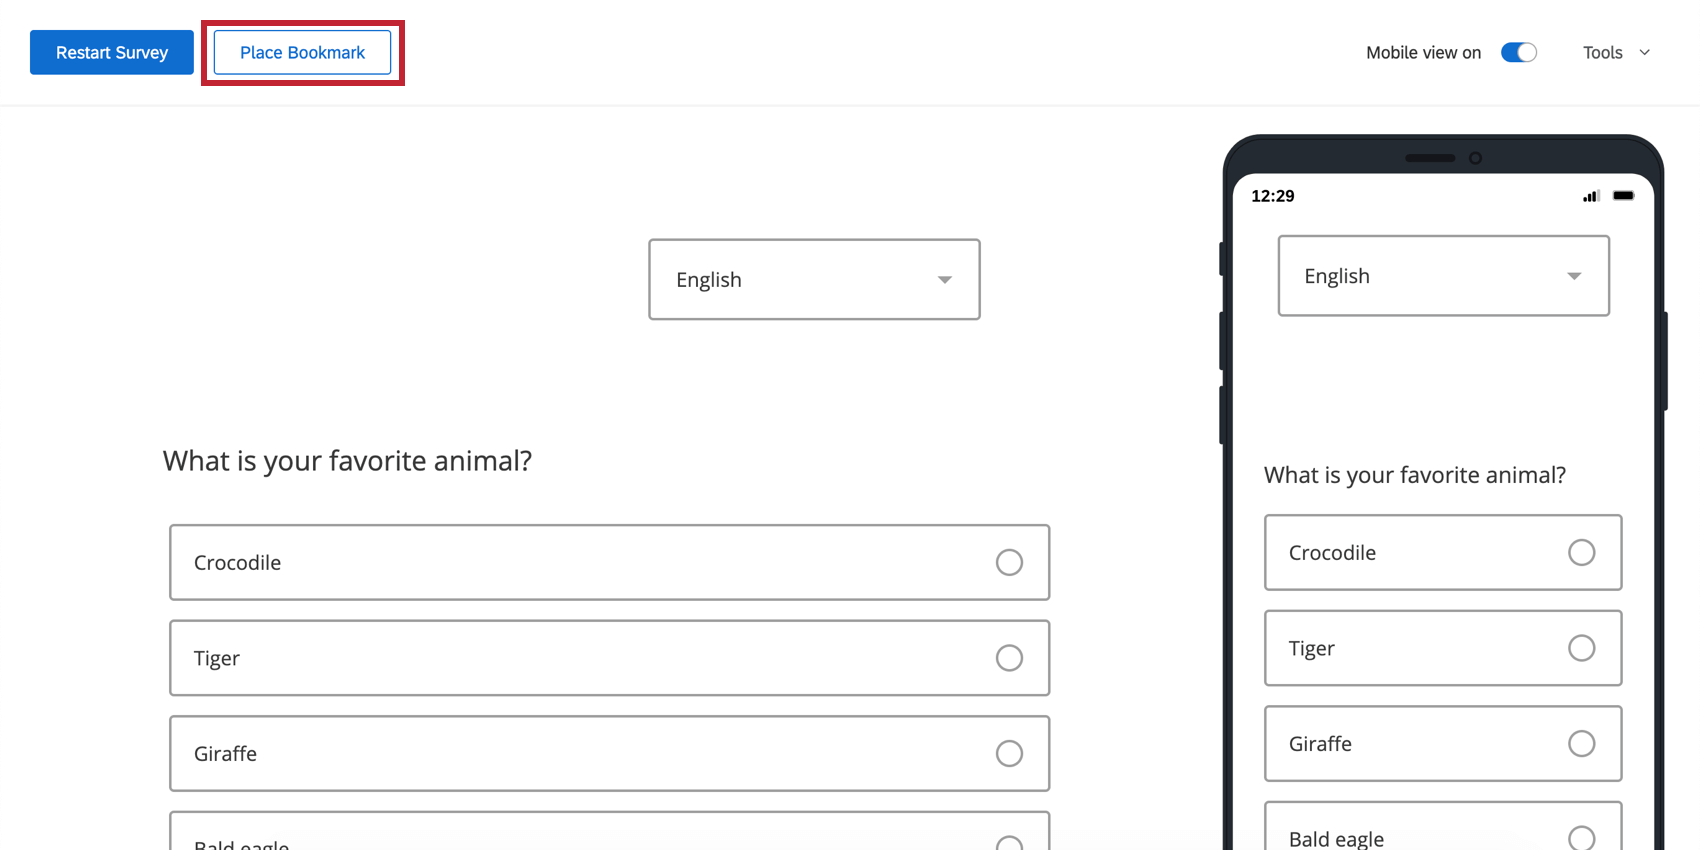 On upper-left, the Place bookmark button